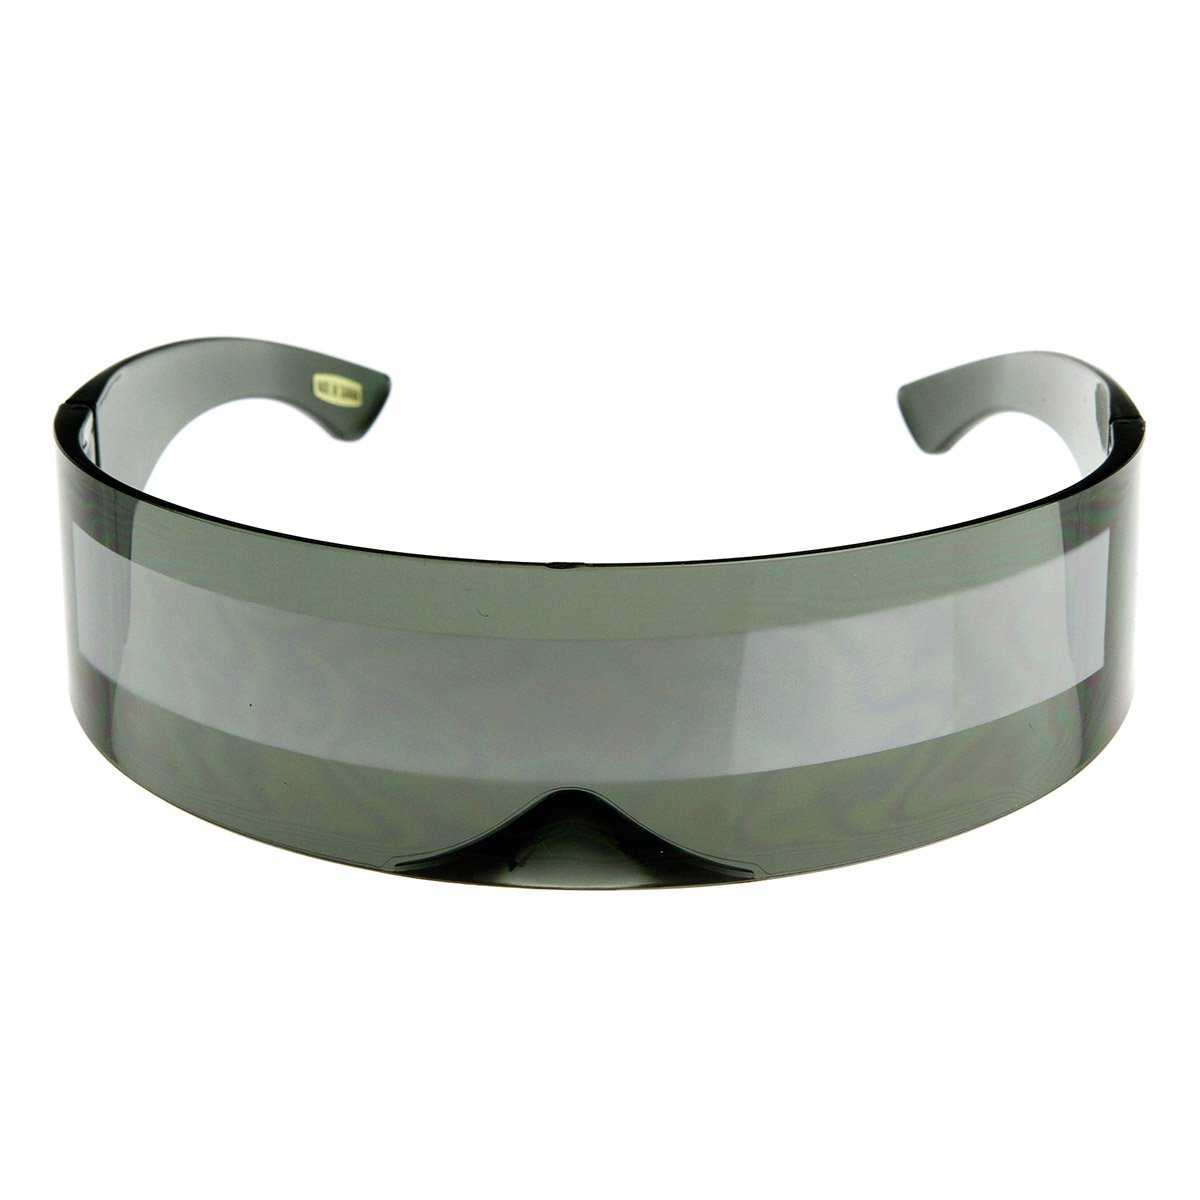 zeroUV - 80s Futuristic Cyclops Cyberpunk Visor Sunglasses with Semi Translucent Mirrored Lens (Smoke/Silver)